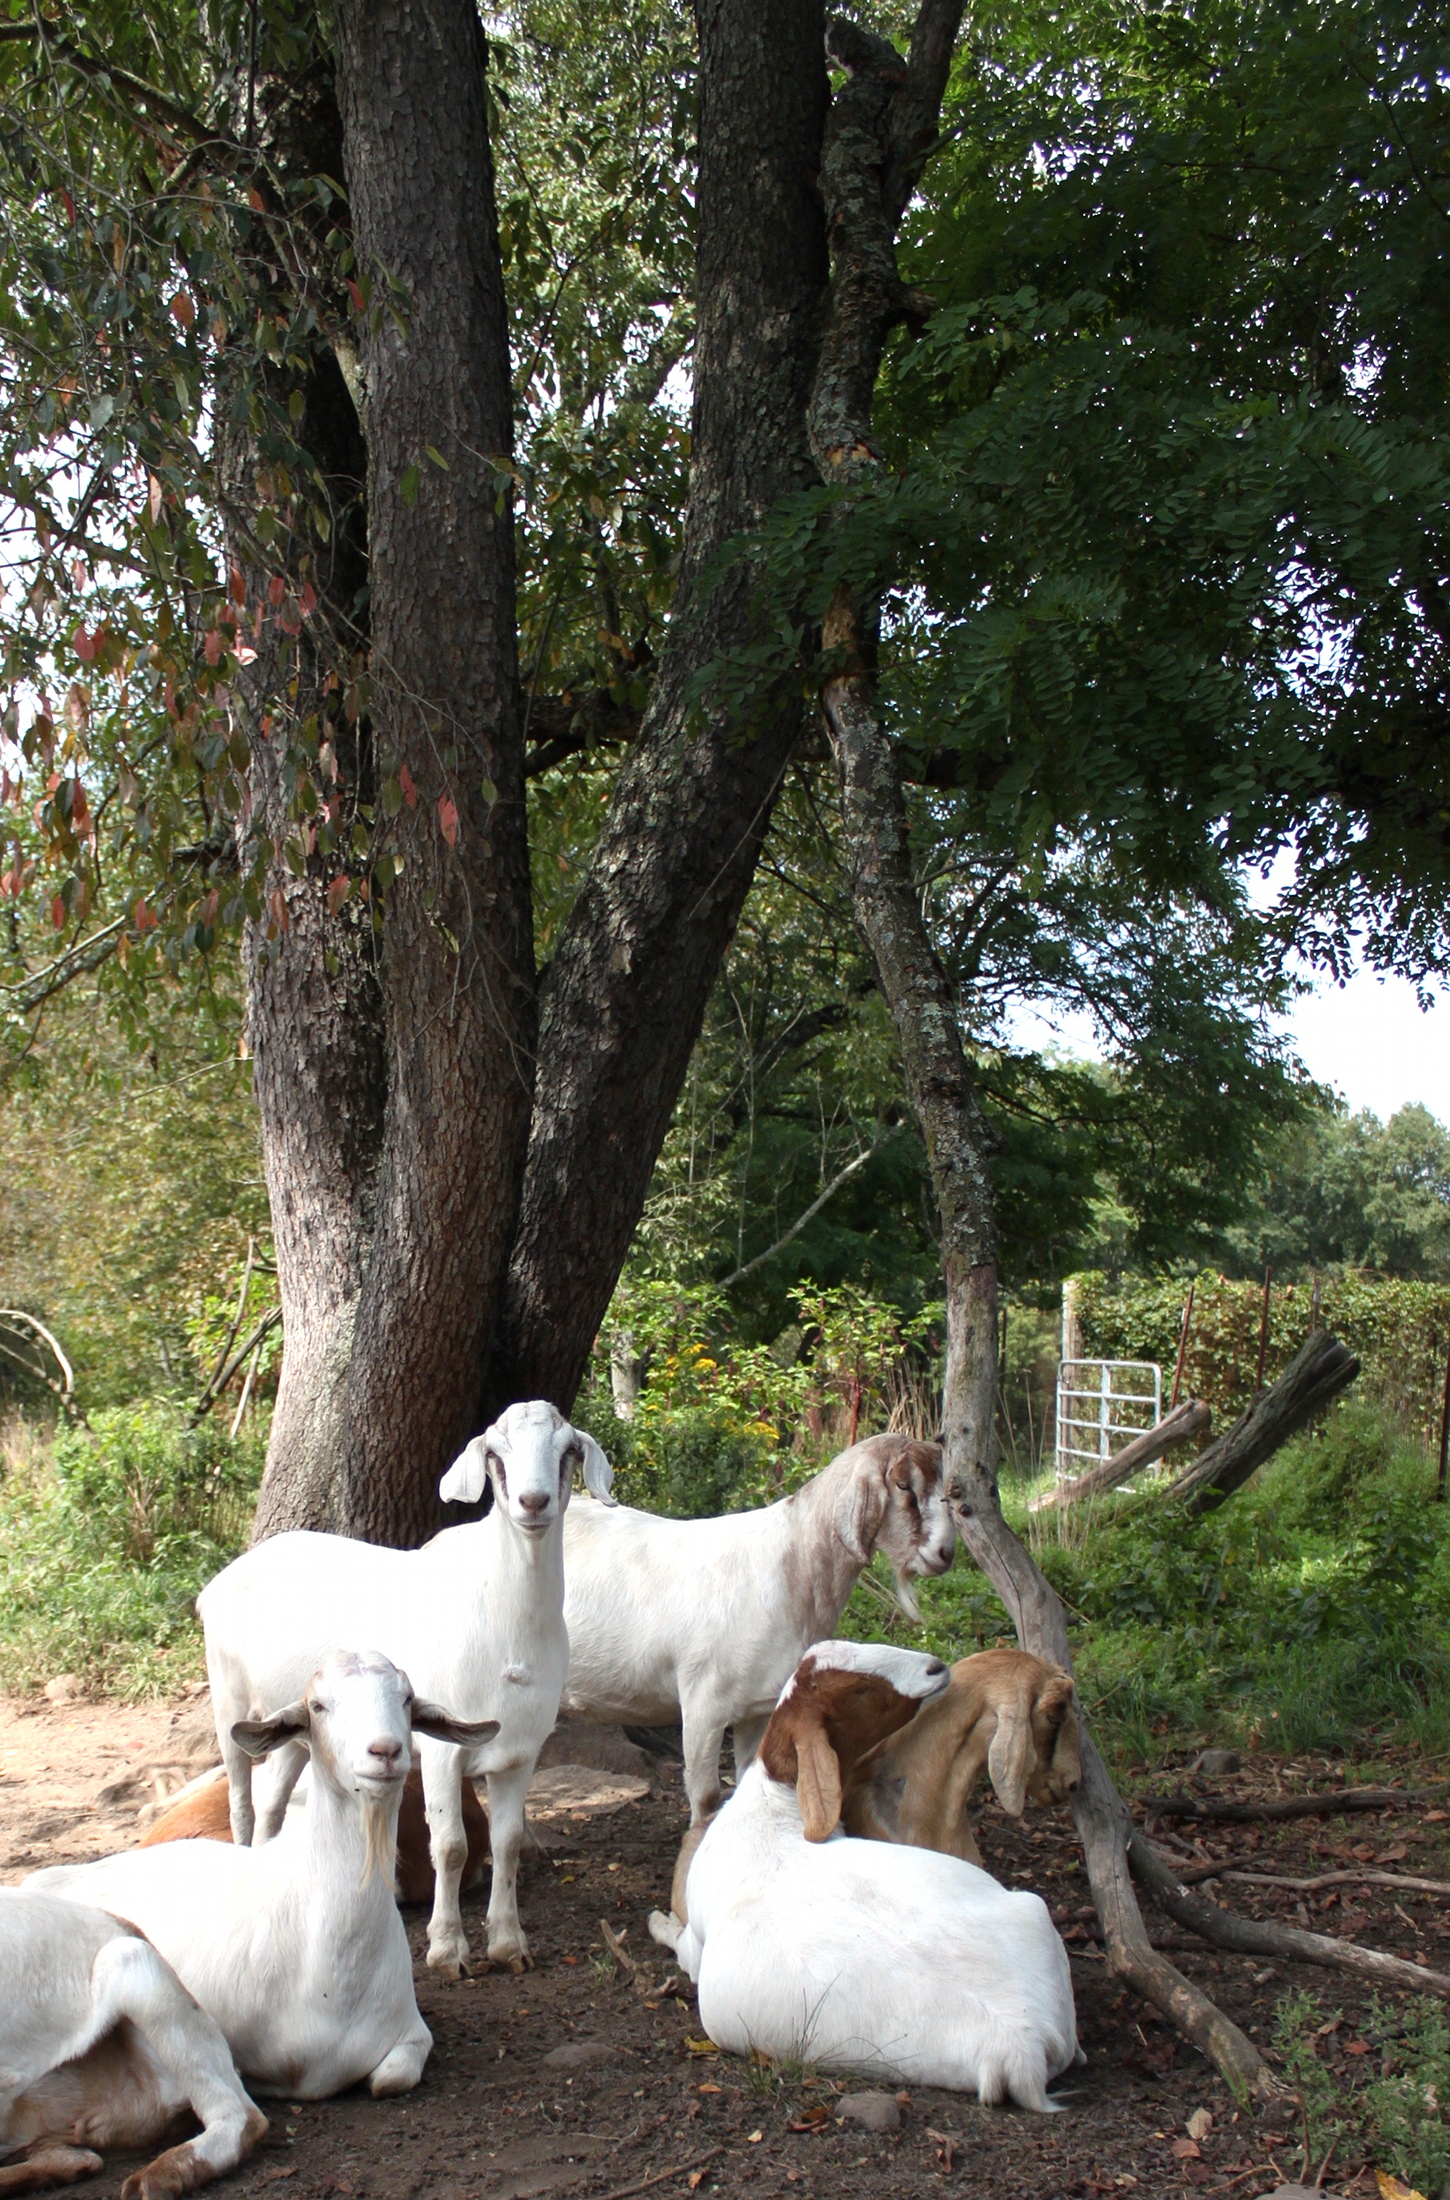 Goats and Trees